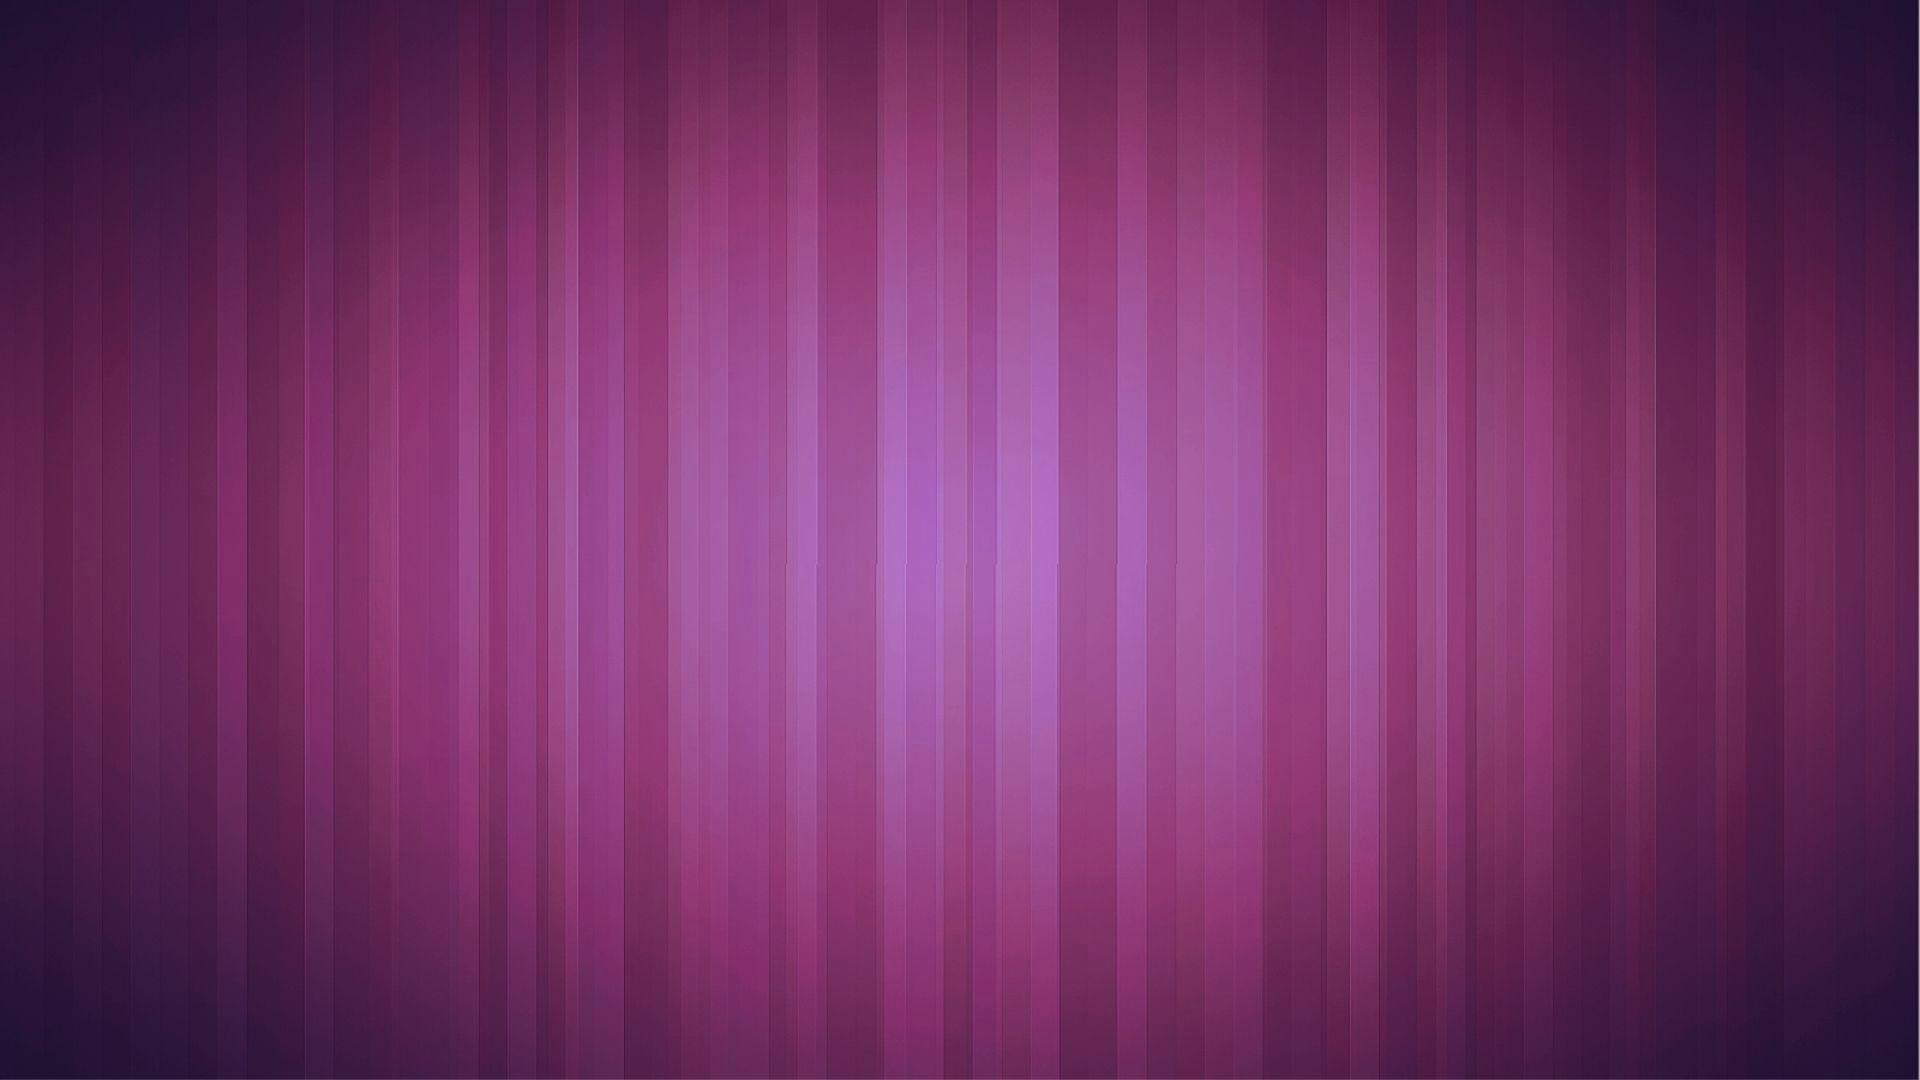 Cool-Pink-Iphone-Photo-Download-Free